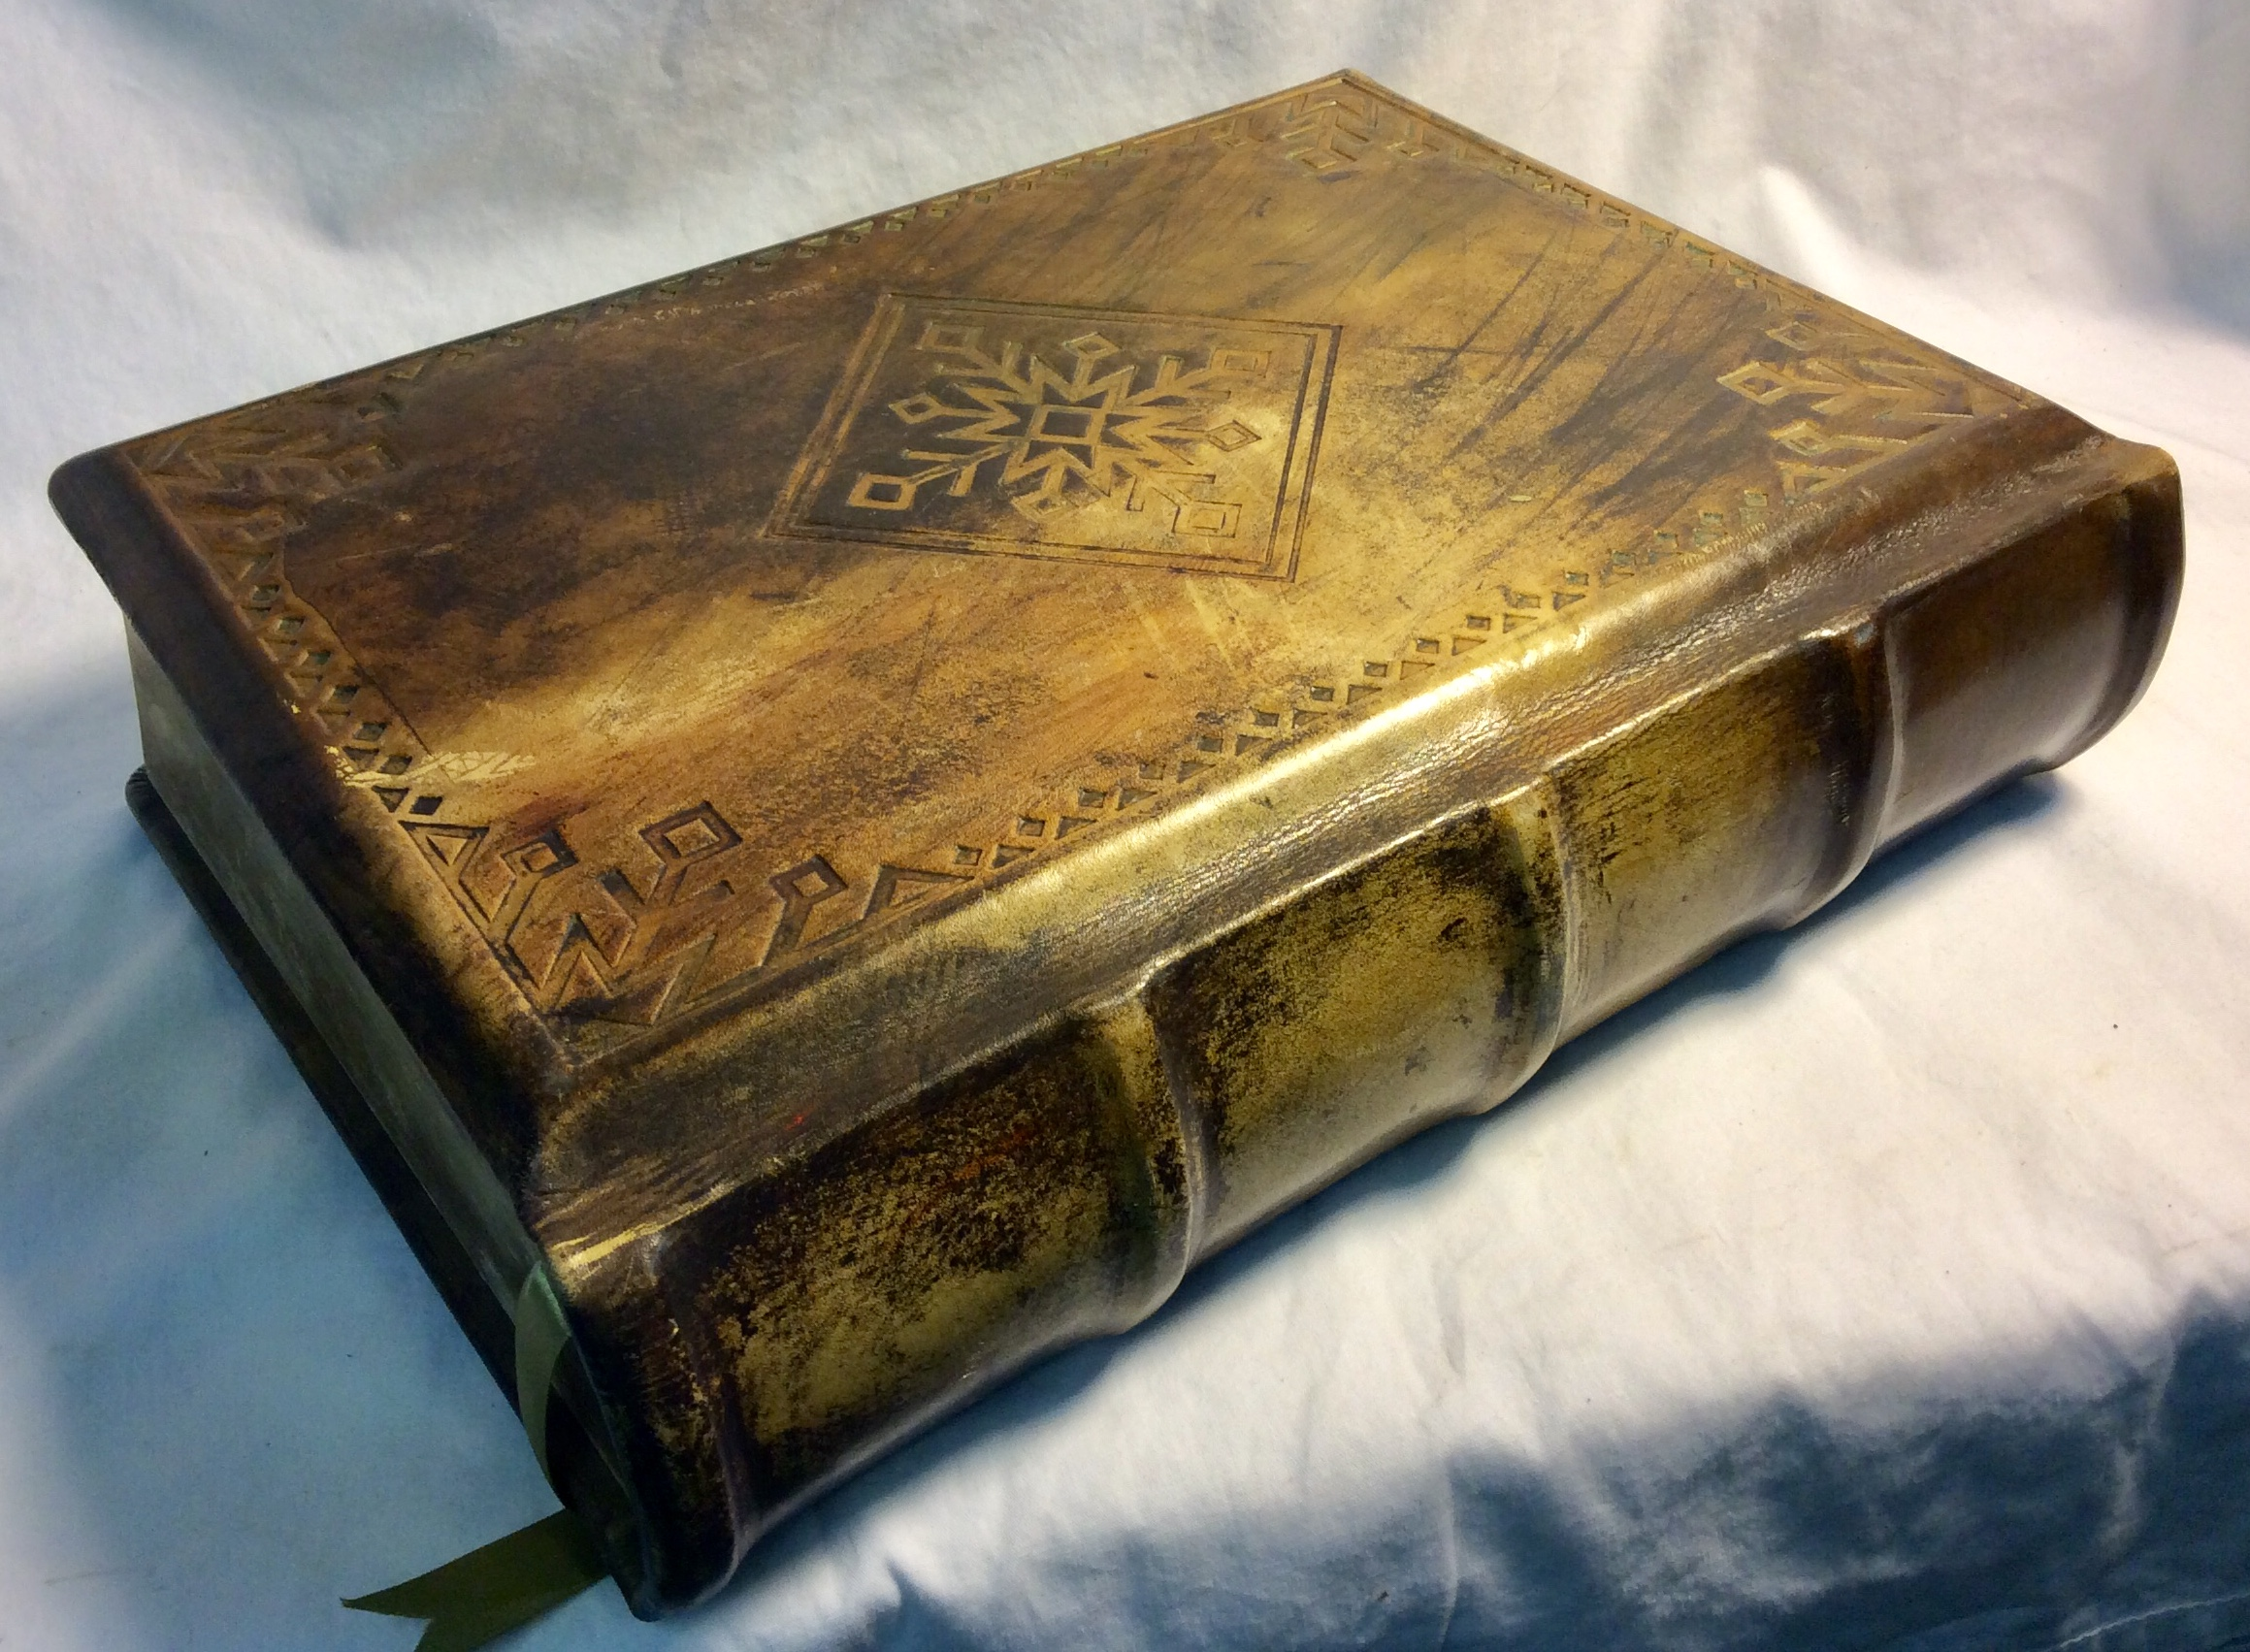 Thick leather covered, brown/gold, magic book with blank pages